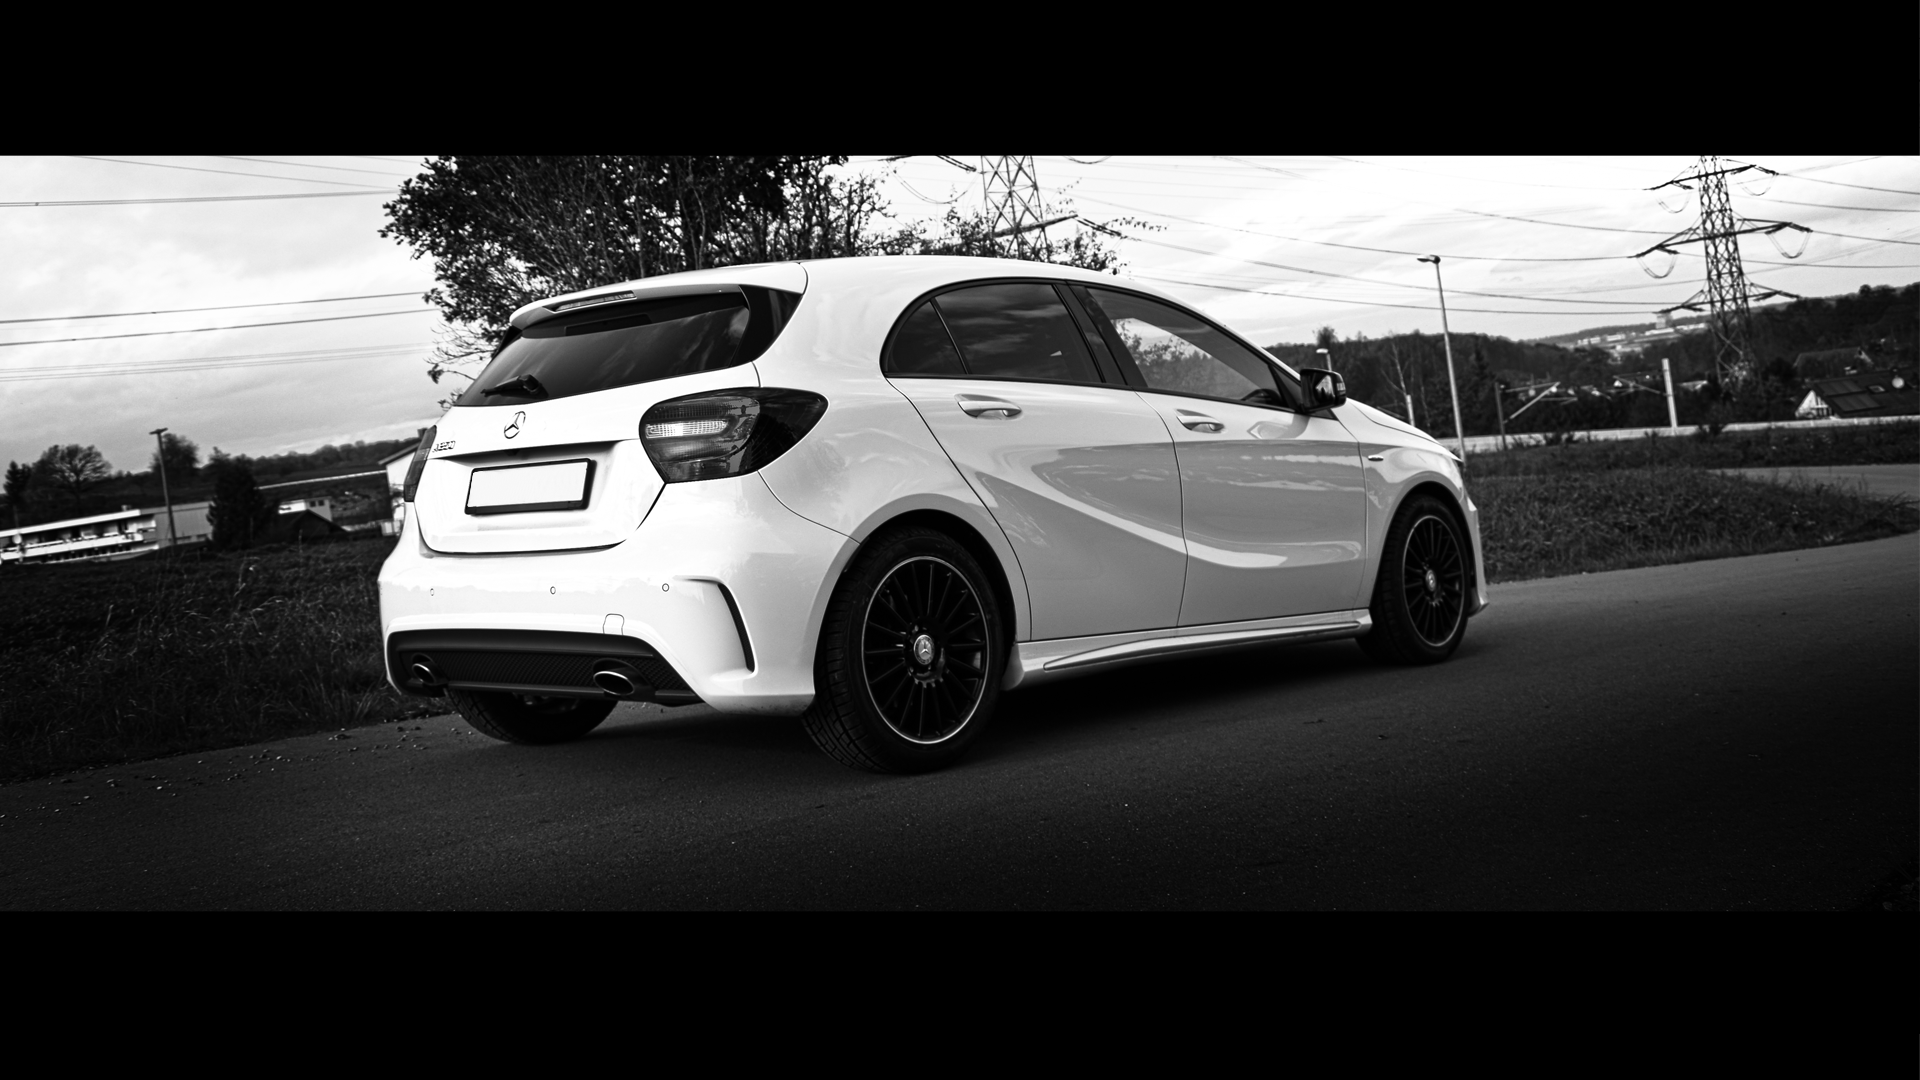 mercedes benz a 250 sport amg lineyashinu-san on deviantart